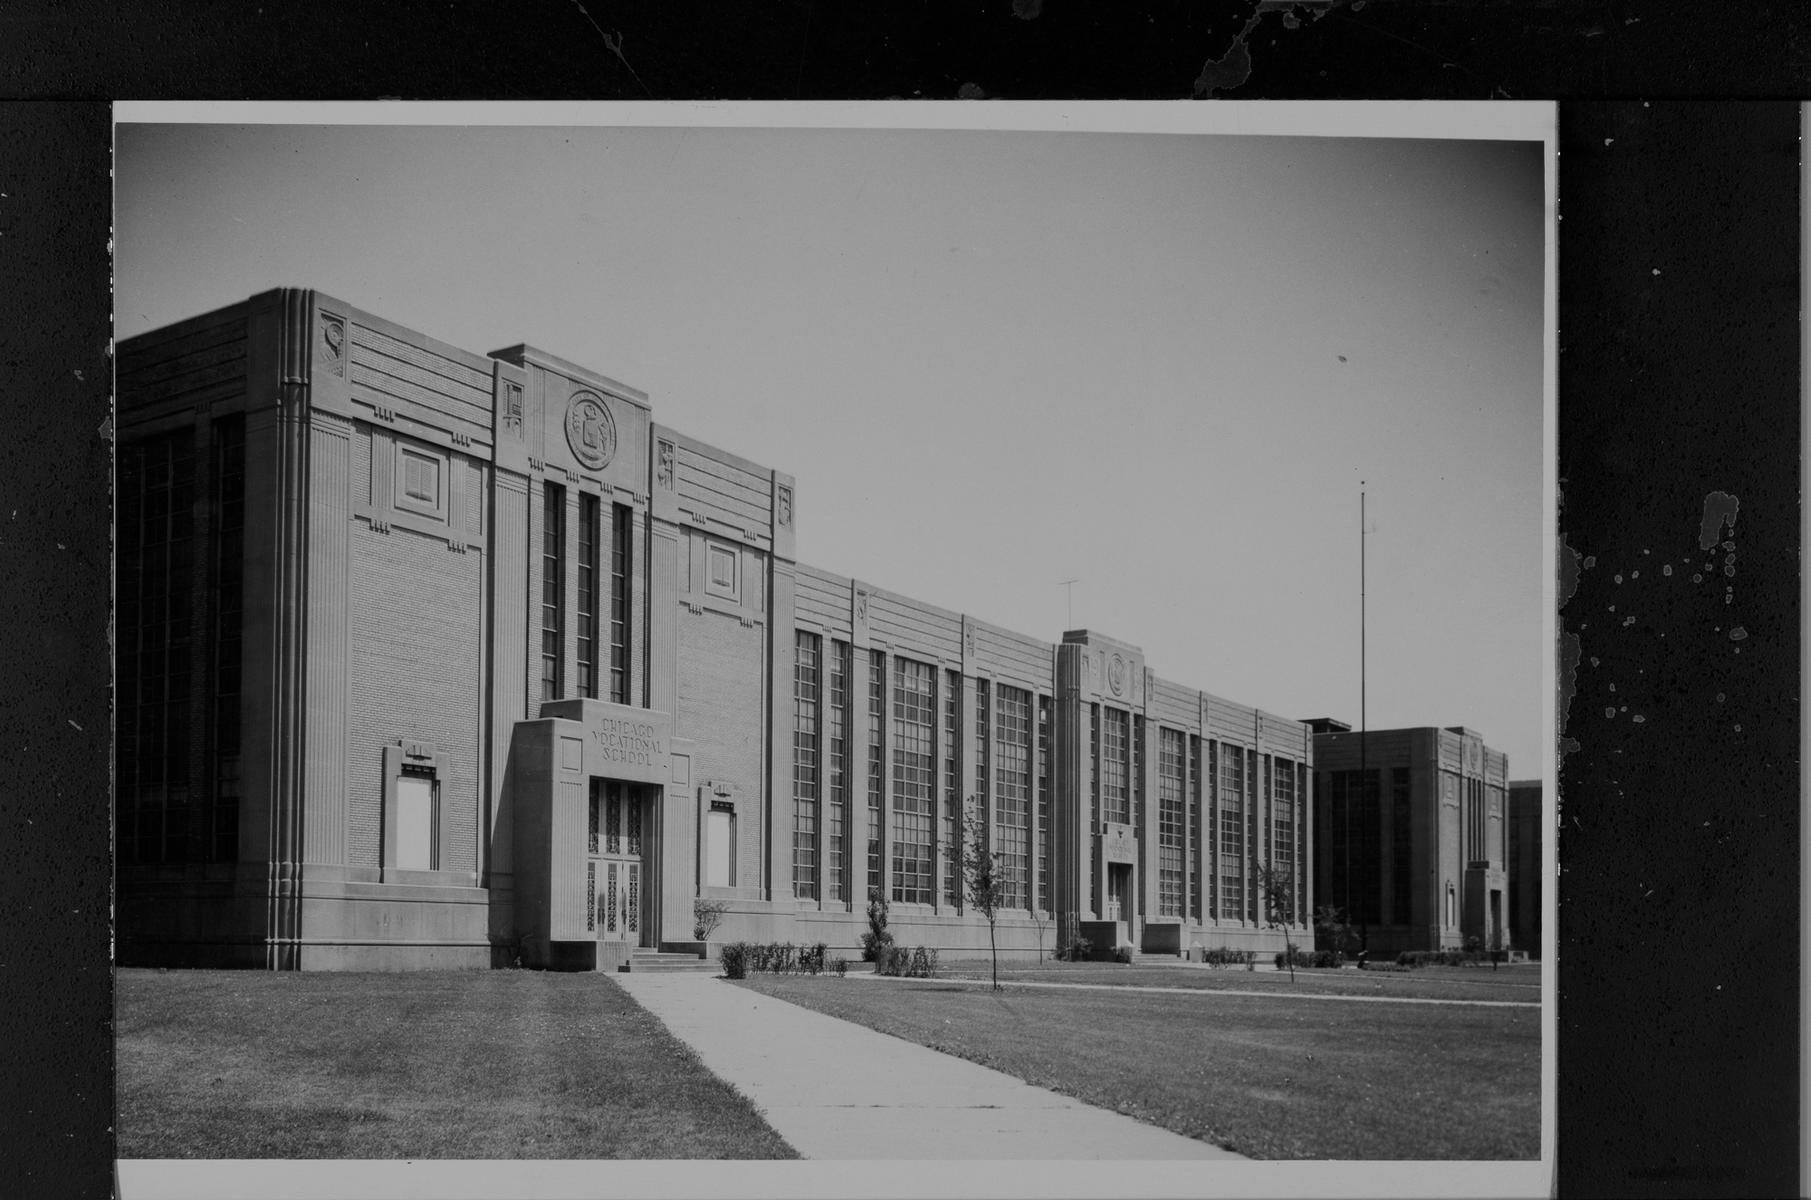 Chicago Vocational School, East 87th Street and South Anthony Avenue